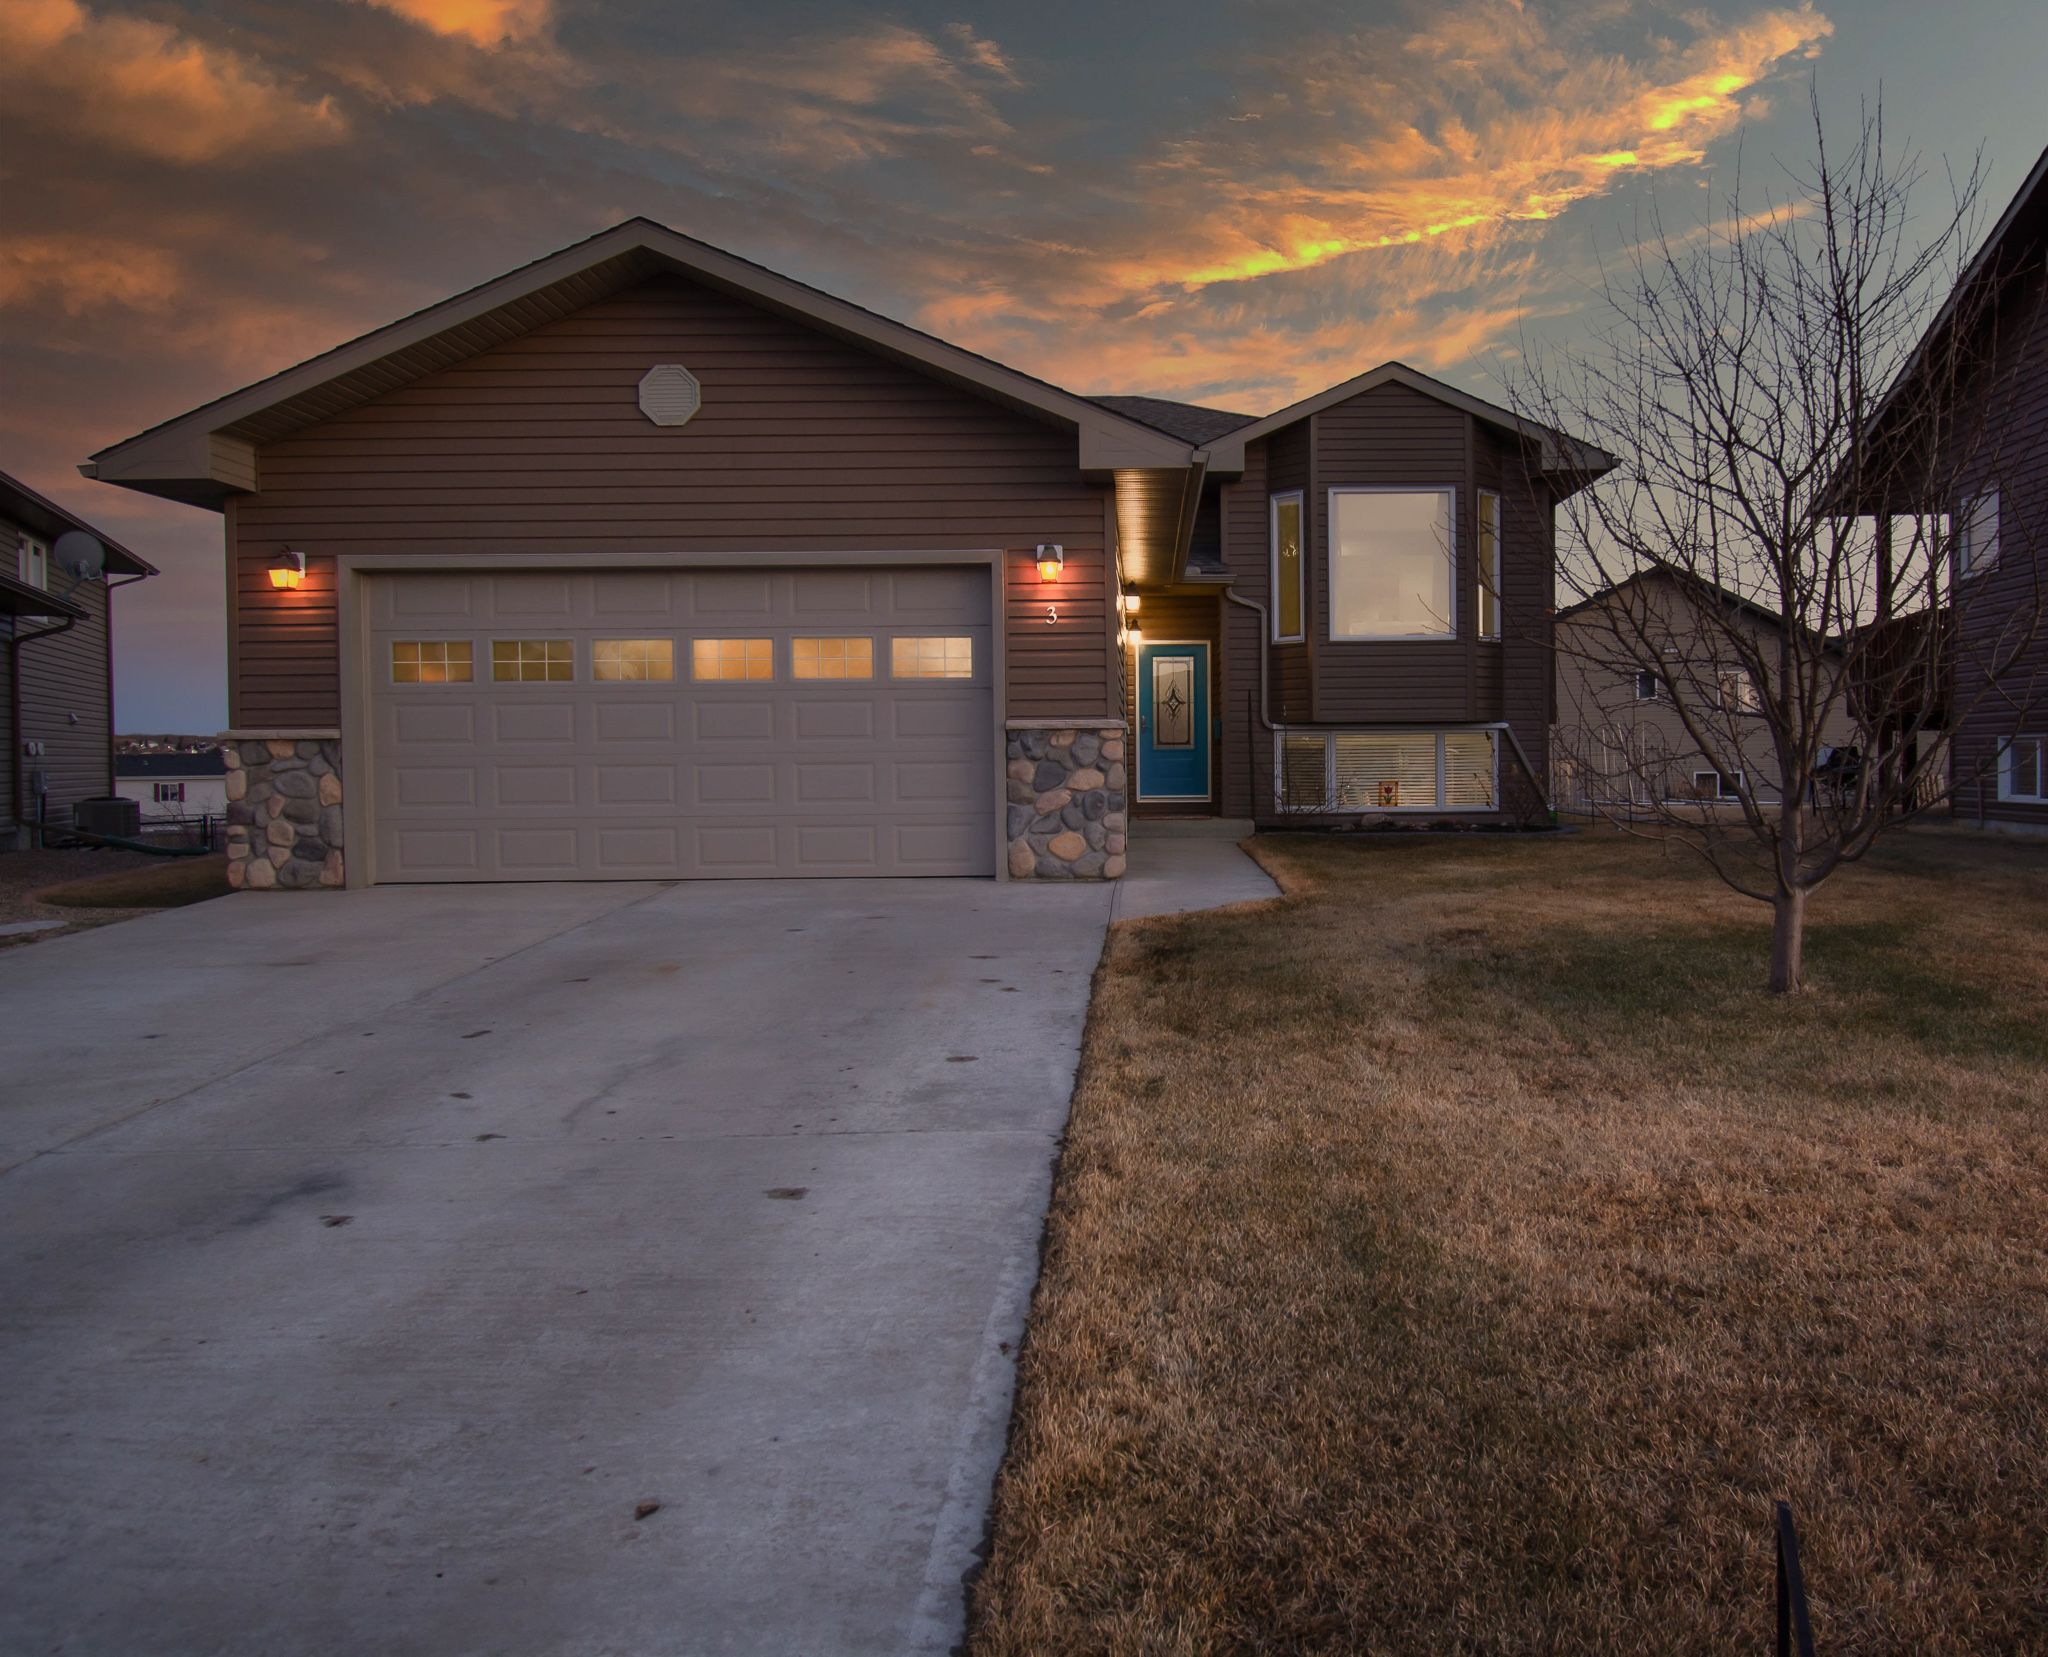 Main Photo: 3 Sweetgrass Place NW: Cold Lake House for sale : MLS®# E4237582